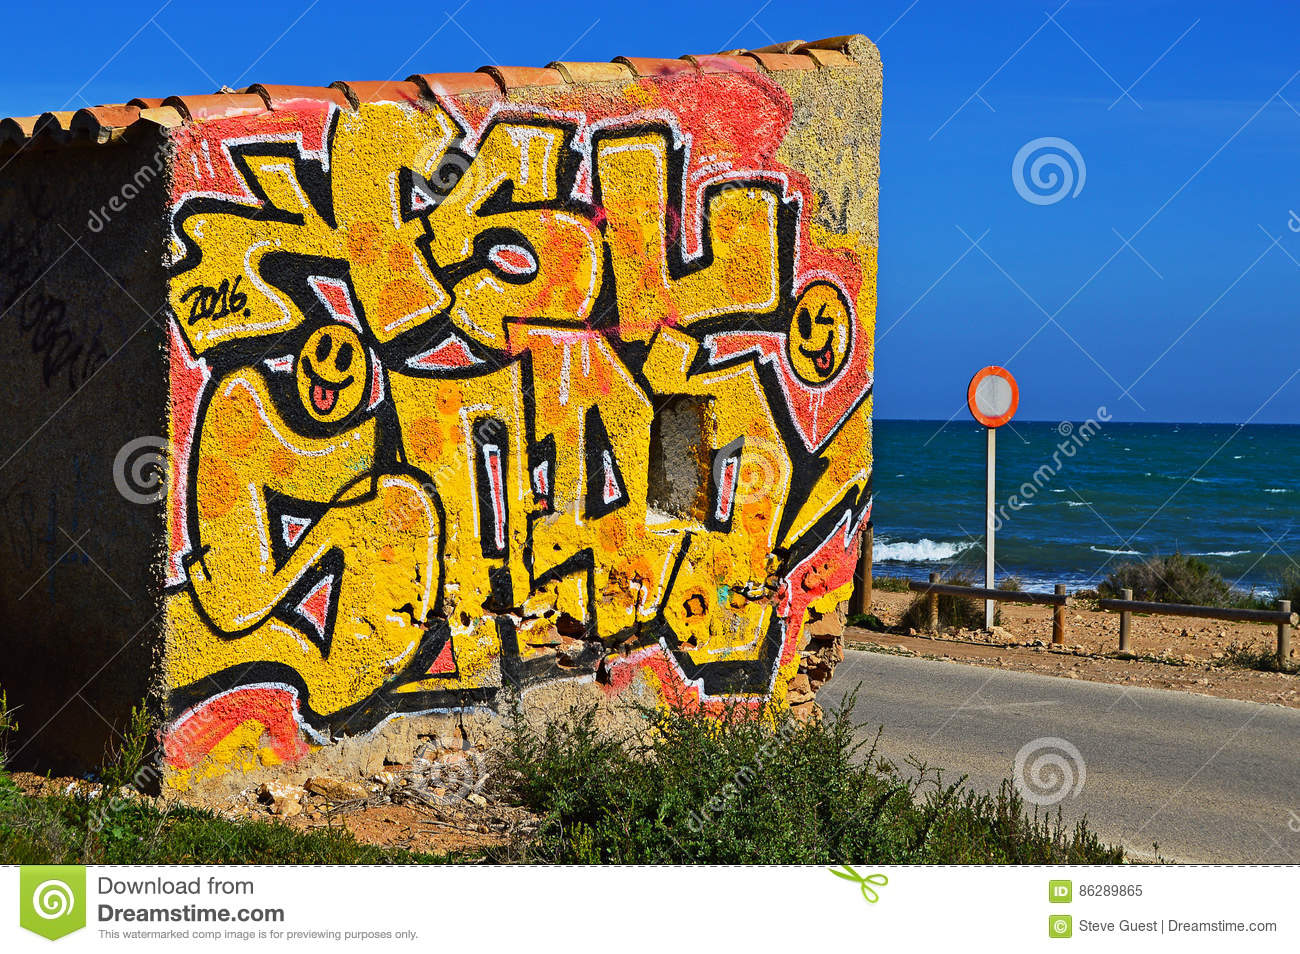 Collection of street art graffiti photos illustrations dreamstime